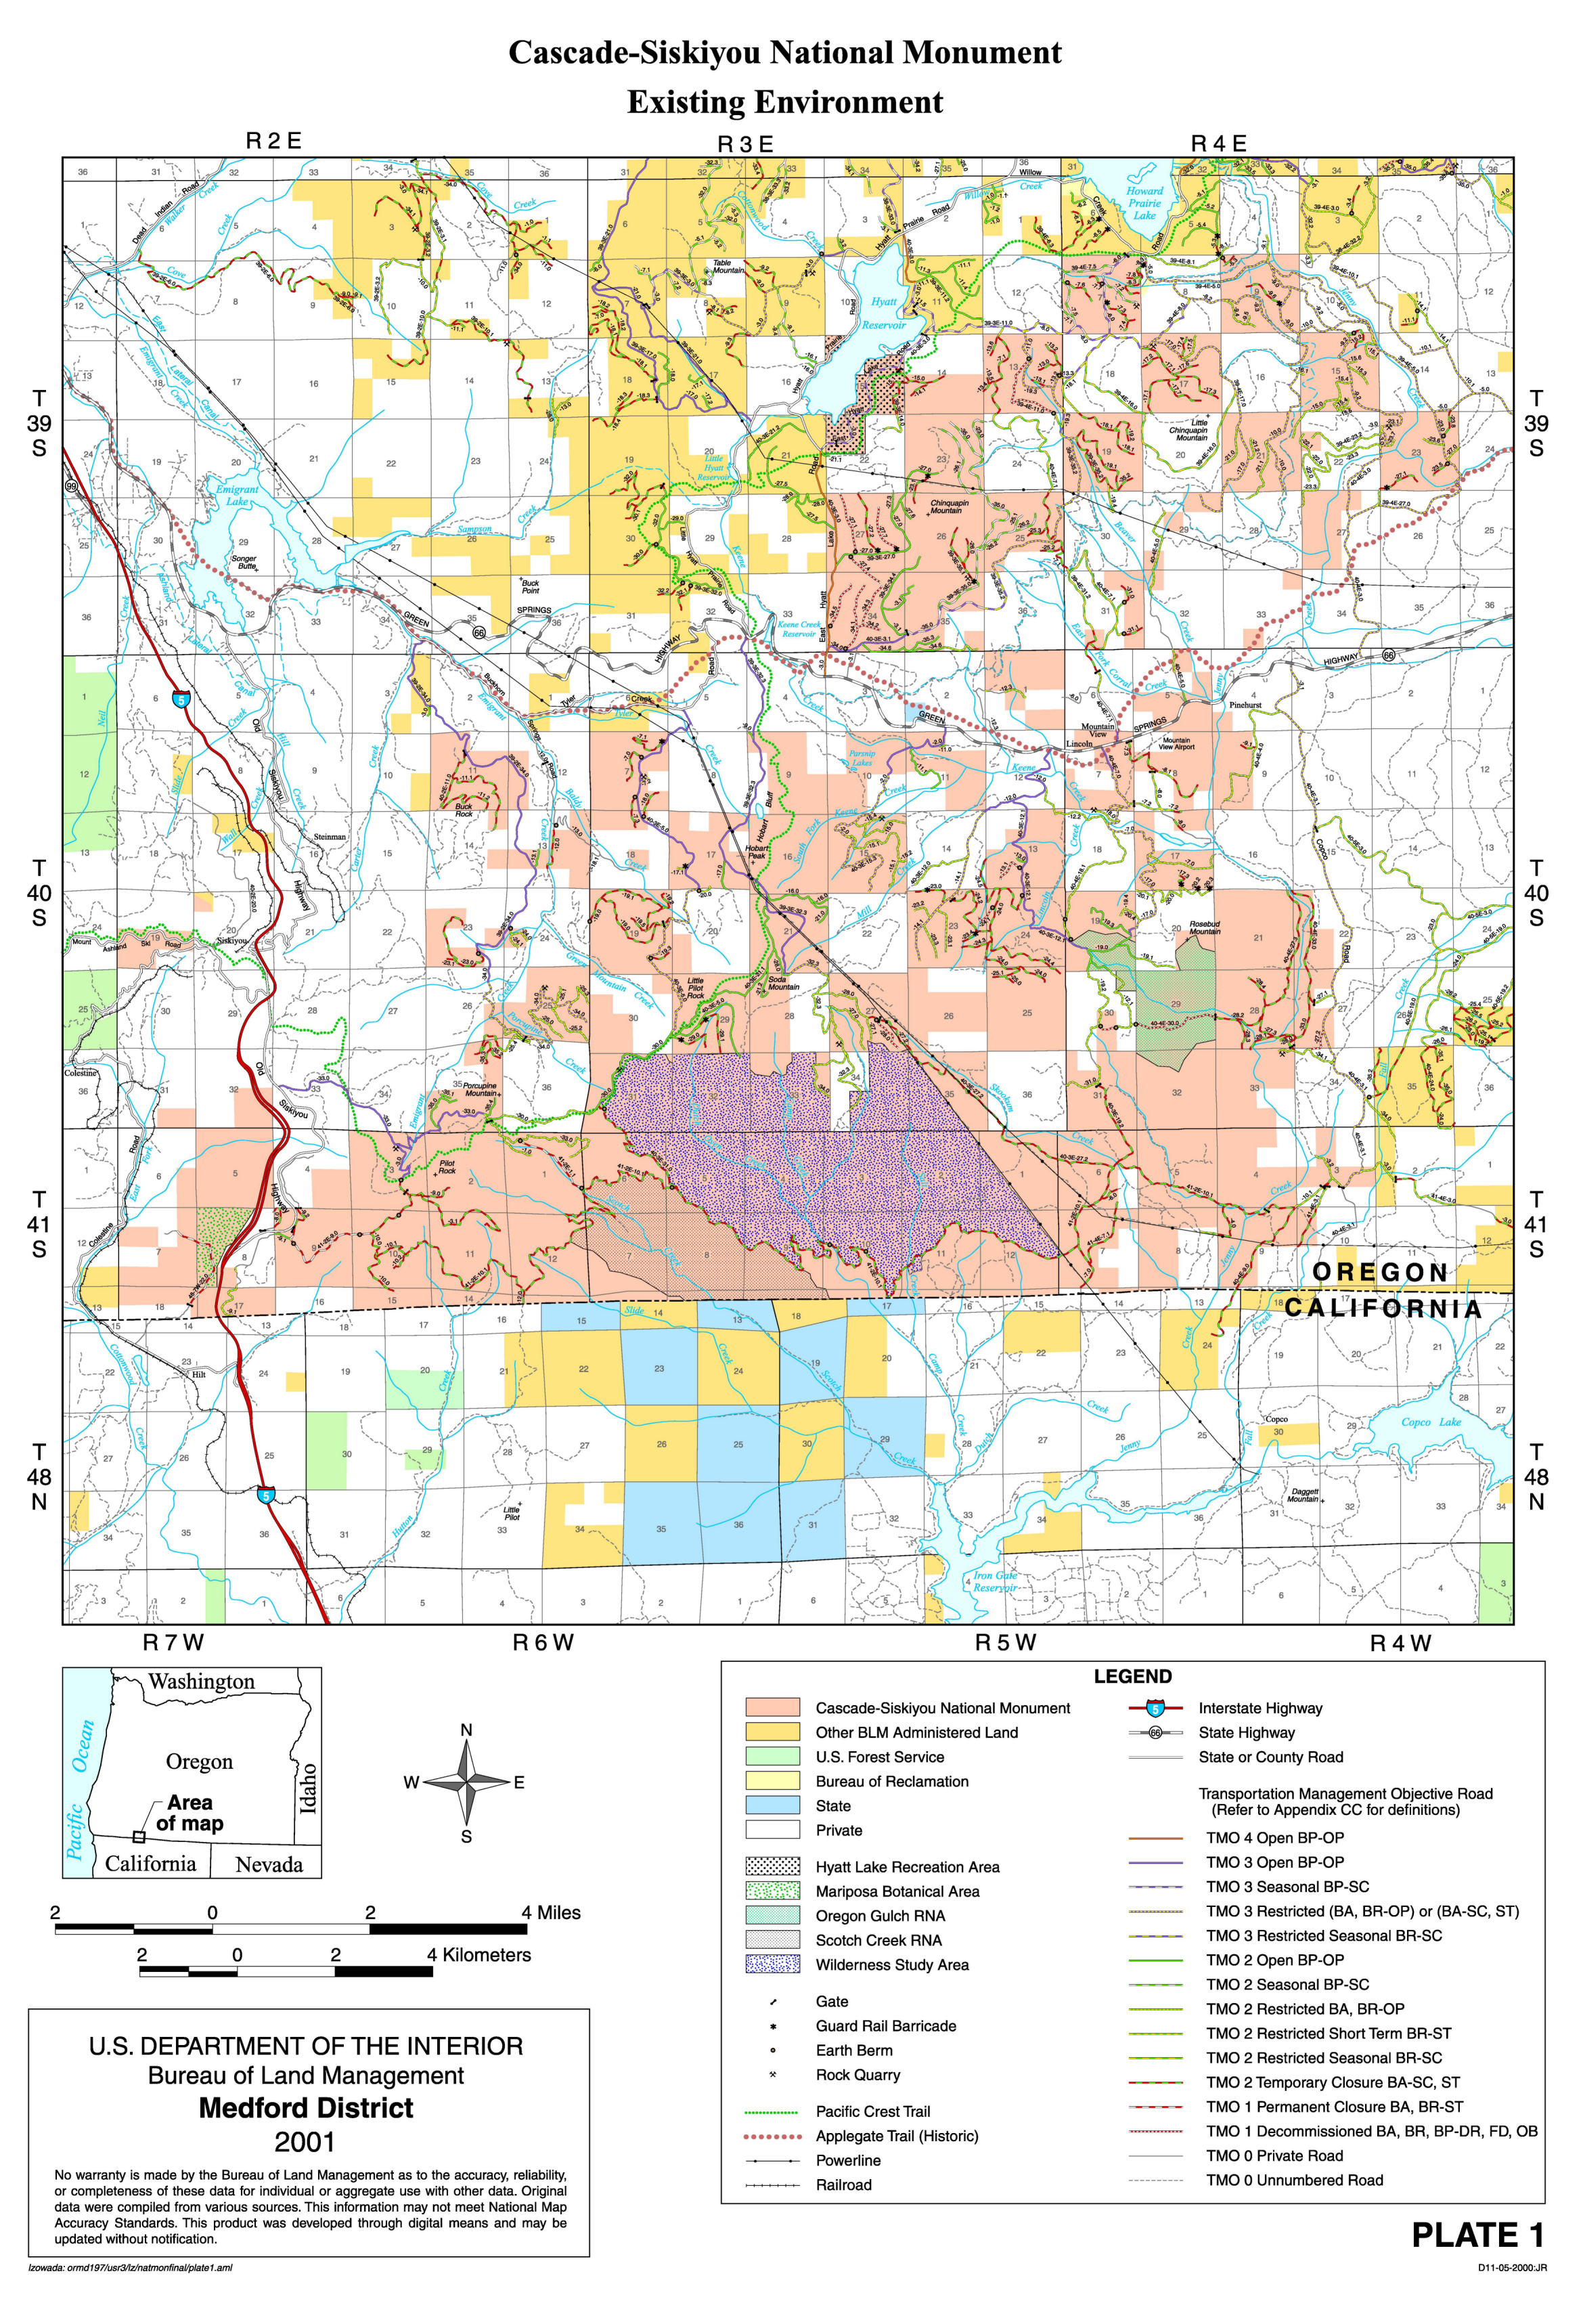 File:CSNM map2001.png - Wikimedia Commons on upper missouri river breaks national monument map, canyons of the ancients national monument map, pompeys pillar national monument map, newberry national volcanic monument map, cedar breaks national monument map, el malpais national monument map, lava beds national monument map, devils postpile national monument map, sonoran desert national monument map, alibates flint quarries national monument map, craters of the moon national monument map, agua fria national monument map, capulin volcano national monument map, hanford reach national monument map, grand canyon-parashant national monument map, ironwood forest national monument map, giant sequoia national monument map, buck island reef national monument map, yucca house national monument map, vermilion cliffs national monument map,